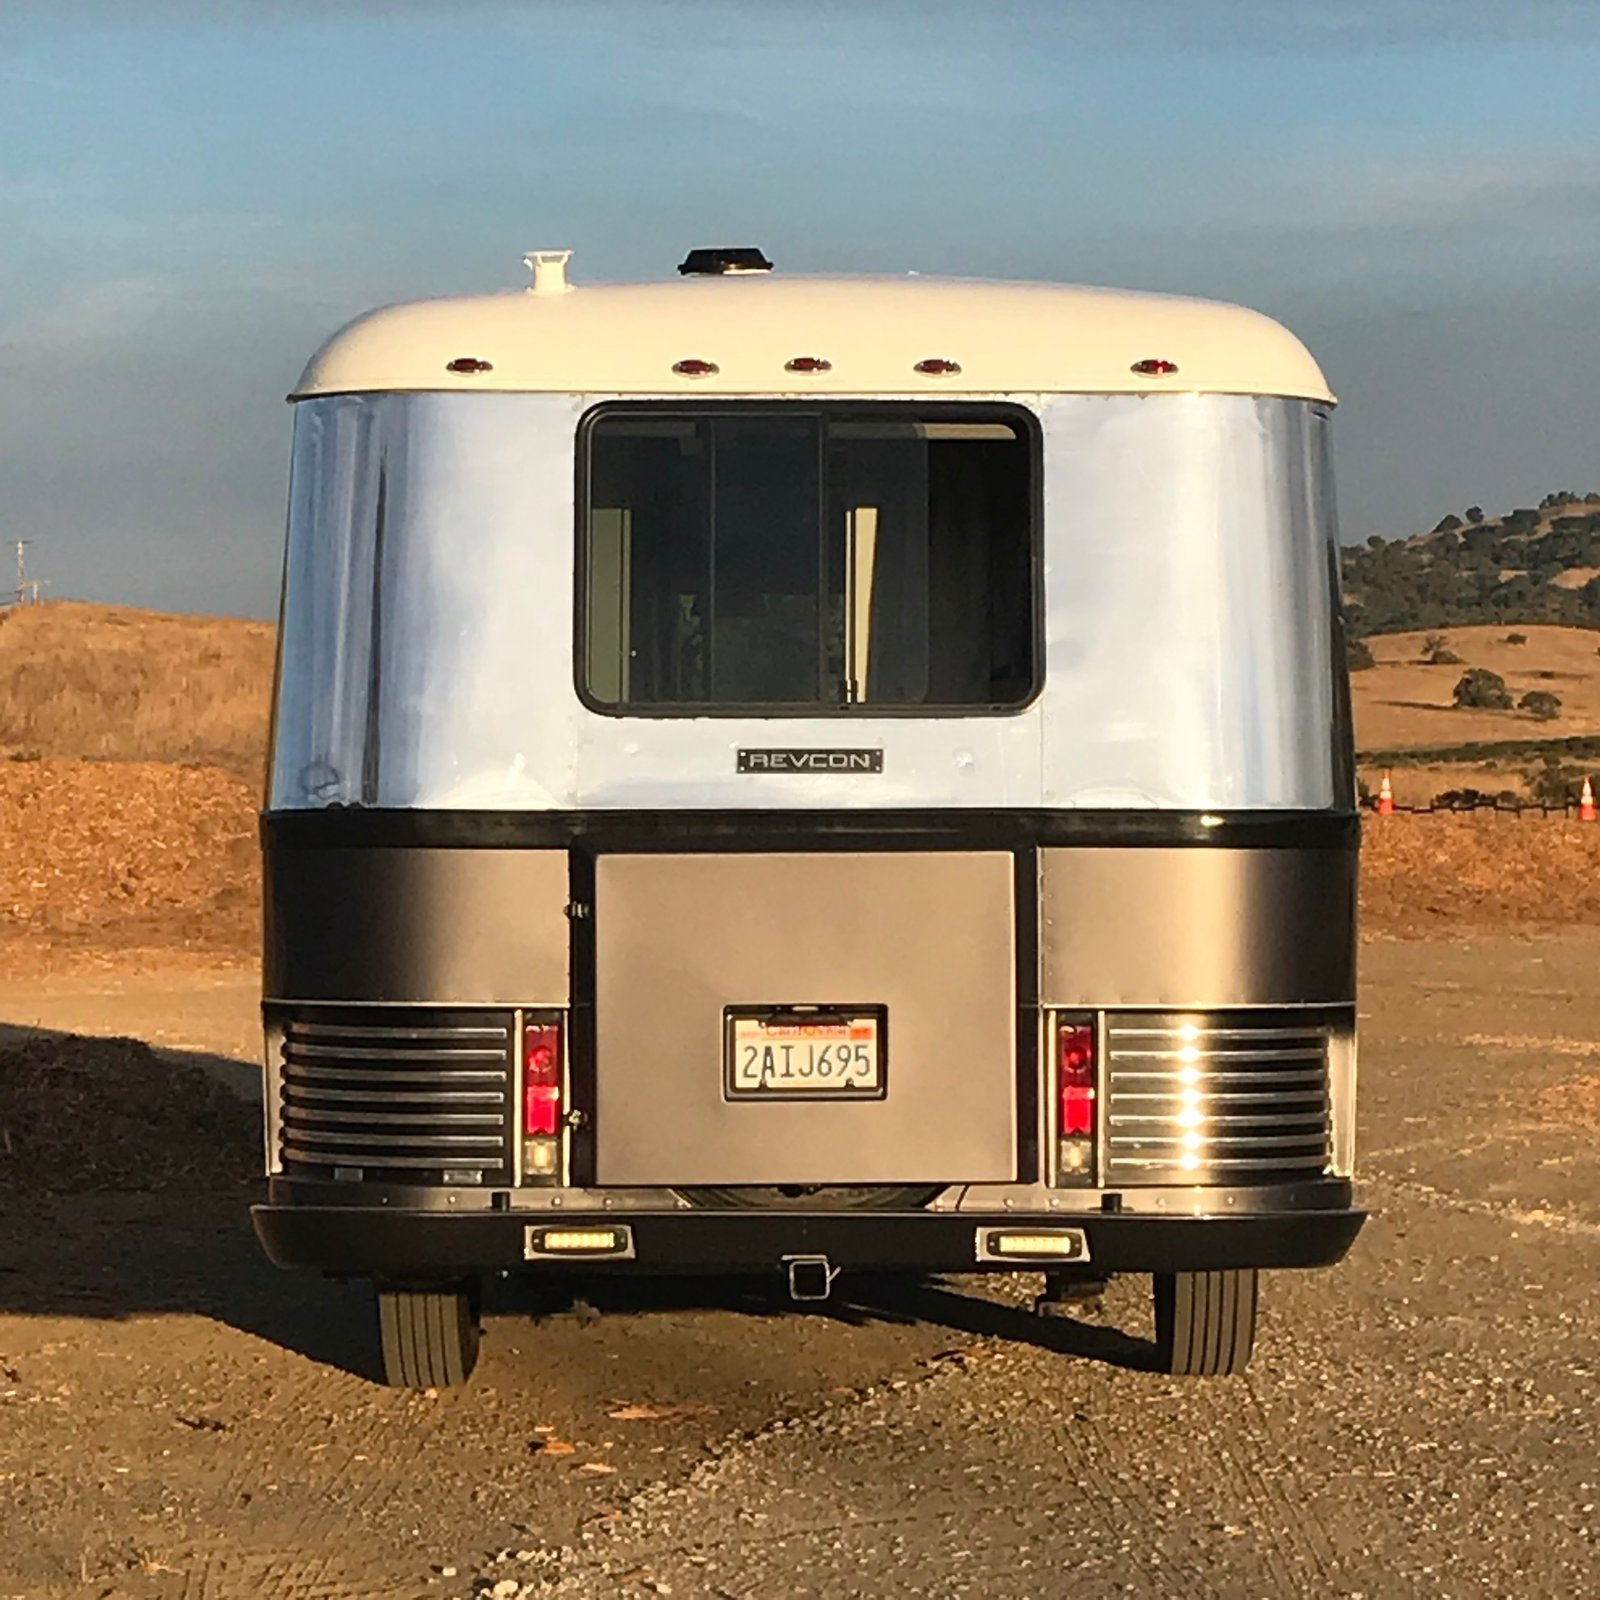 "Rear view. Aluminum trim prieces were a huge polishing job. LED floodlights inset in custom bumper shed great light for setting up camp! Photo 21 of Flatnose Frank: Our Renovated Vintage RevCon Motorhome (""Is that an Airstream?"") modern home"